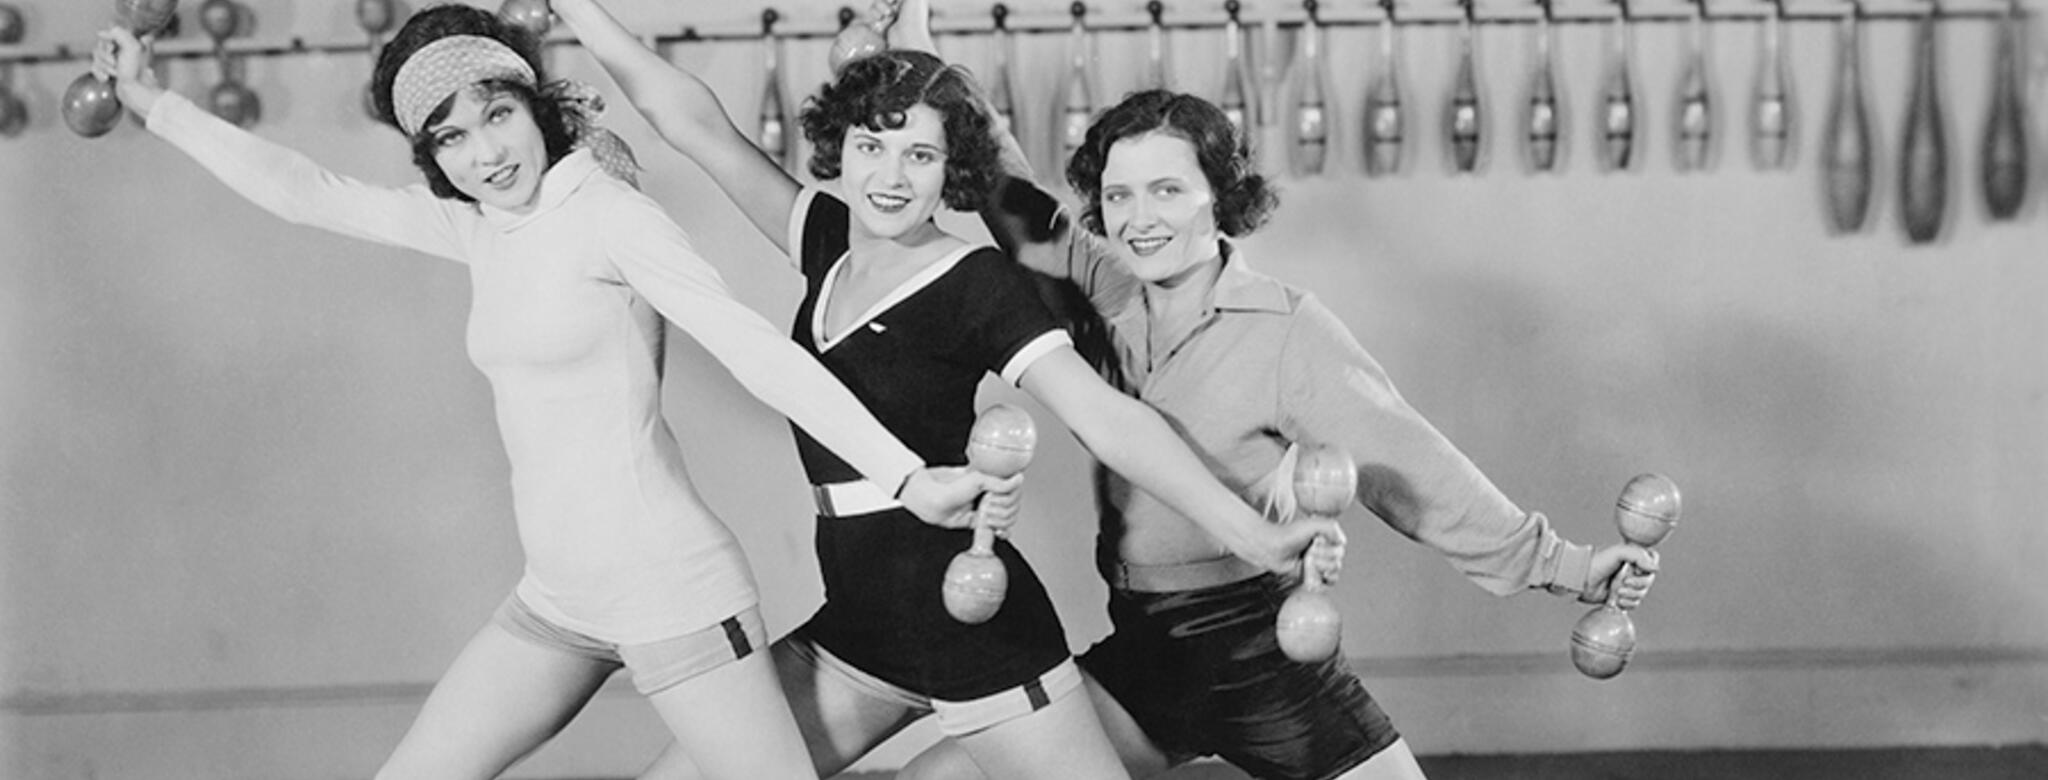 Three woman from the 1920s with vintage workout wear and weights